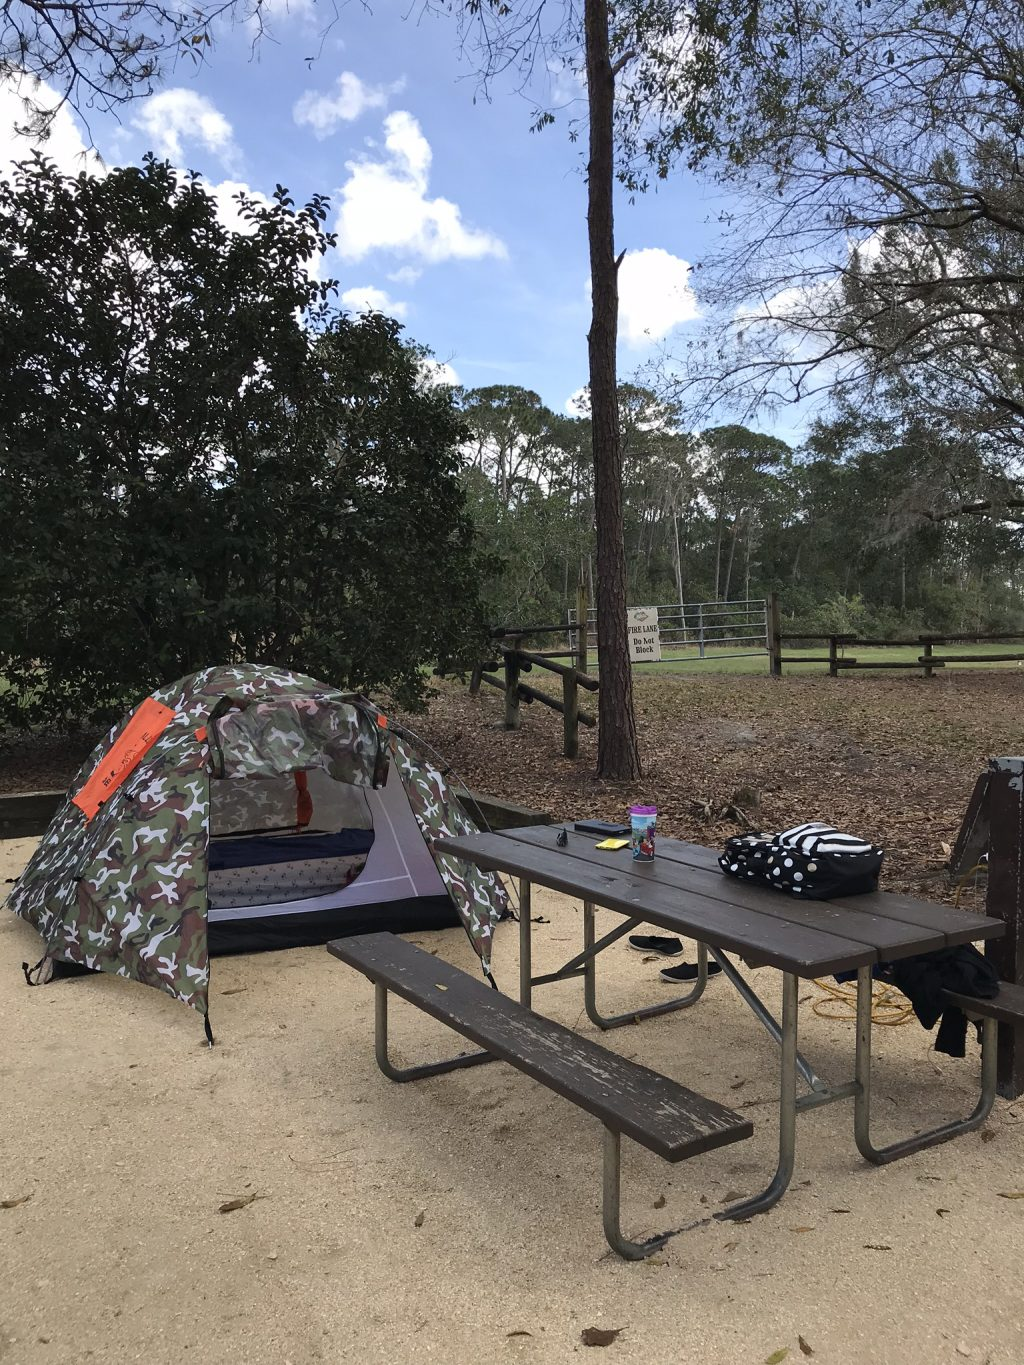 camping at disney world tent campsite with picnic table